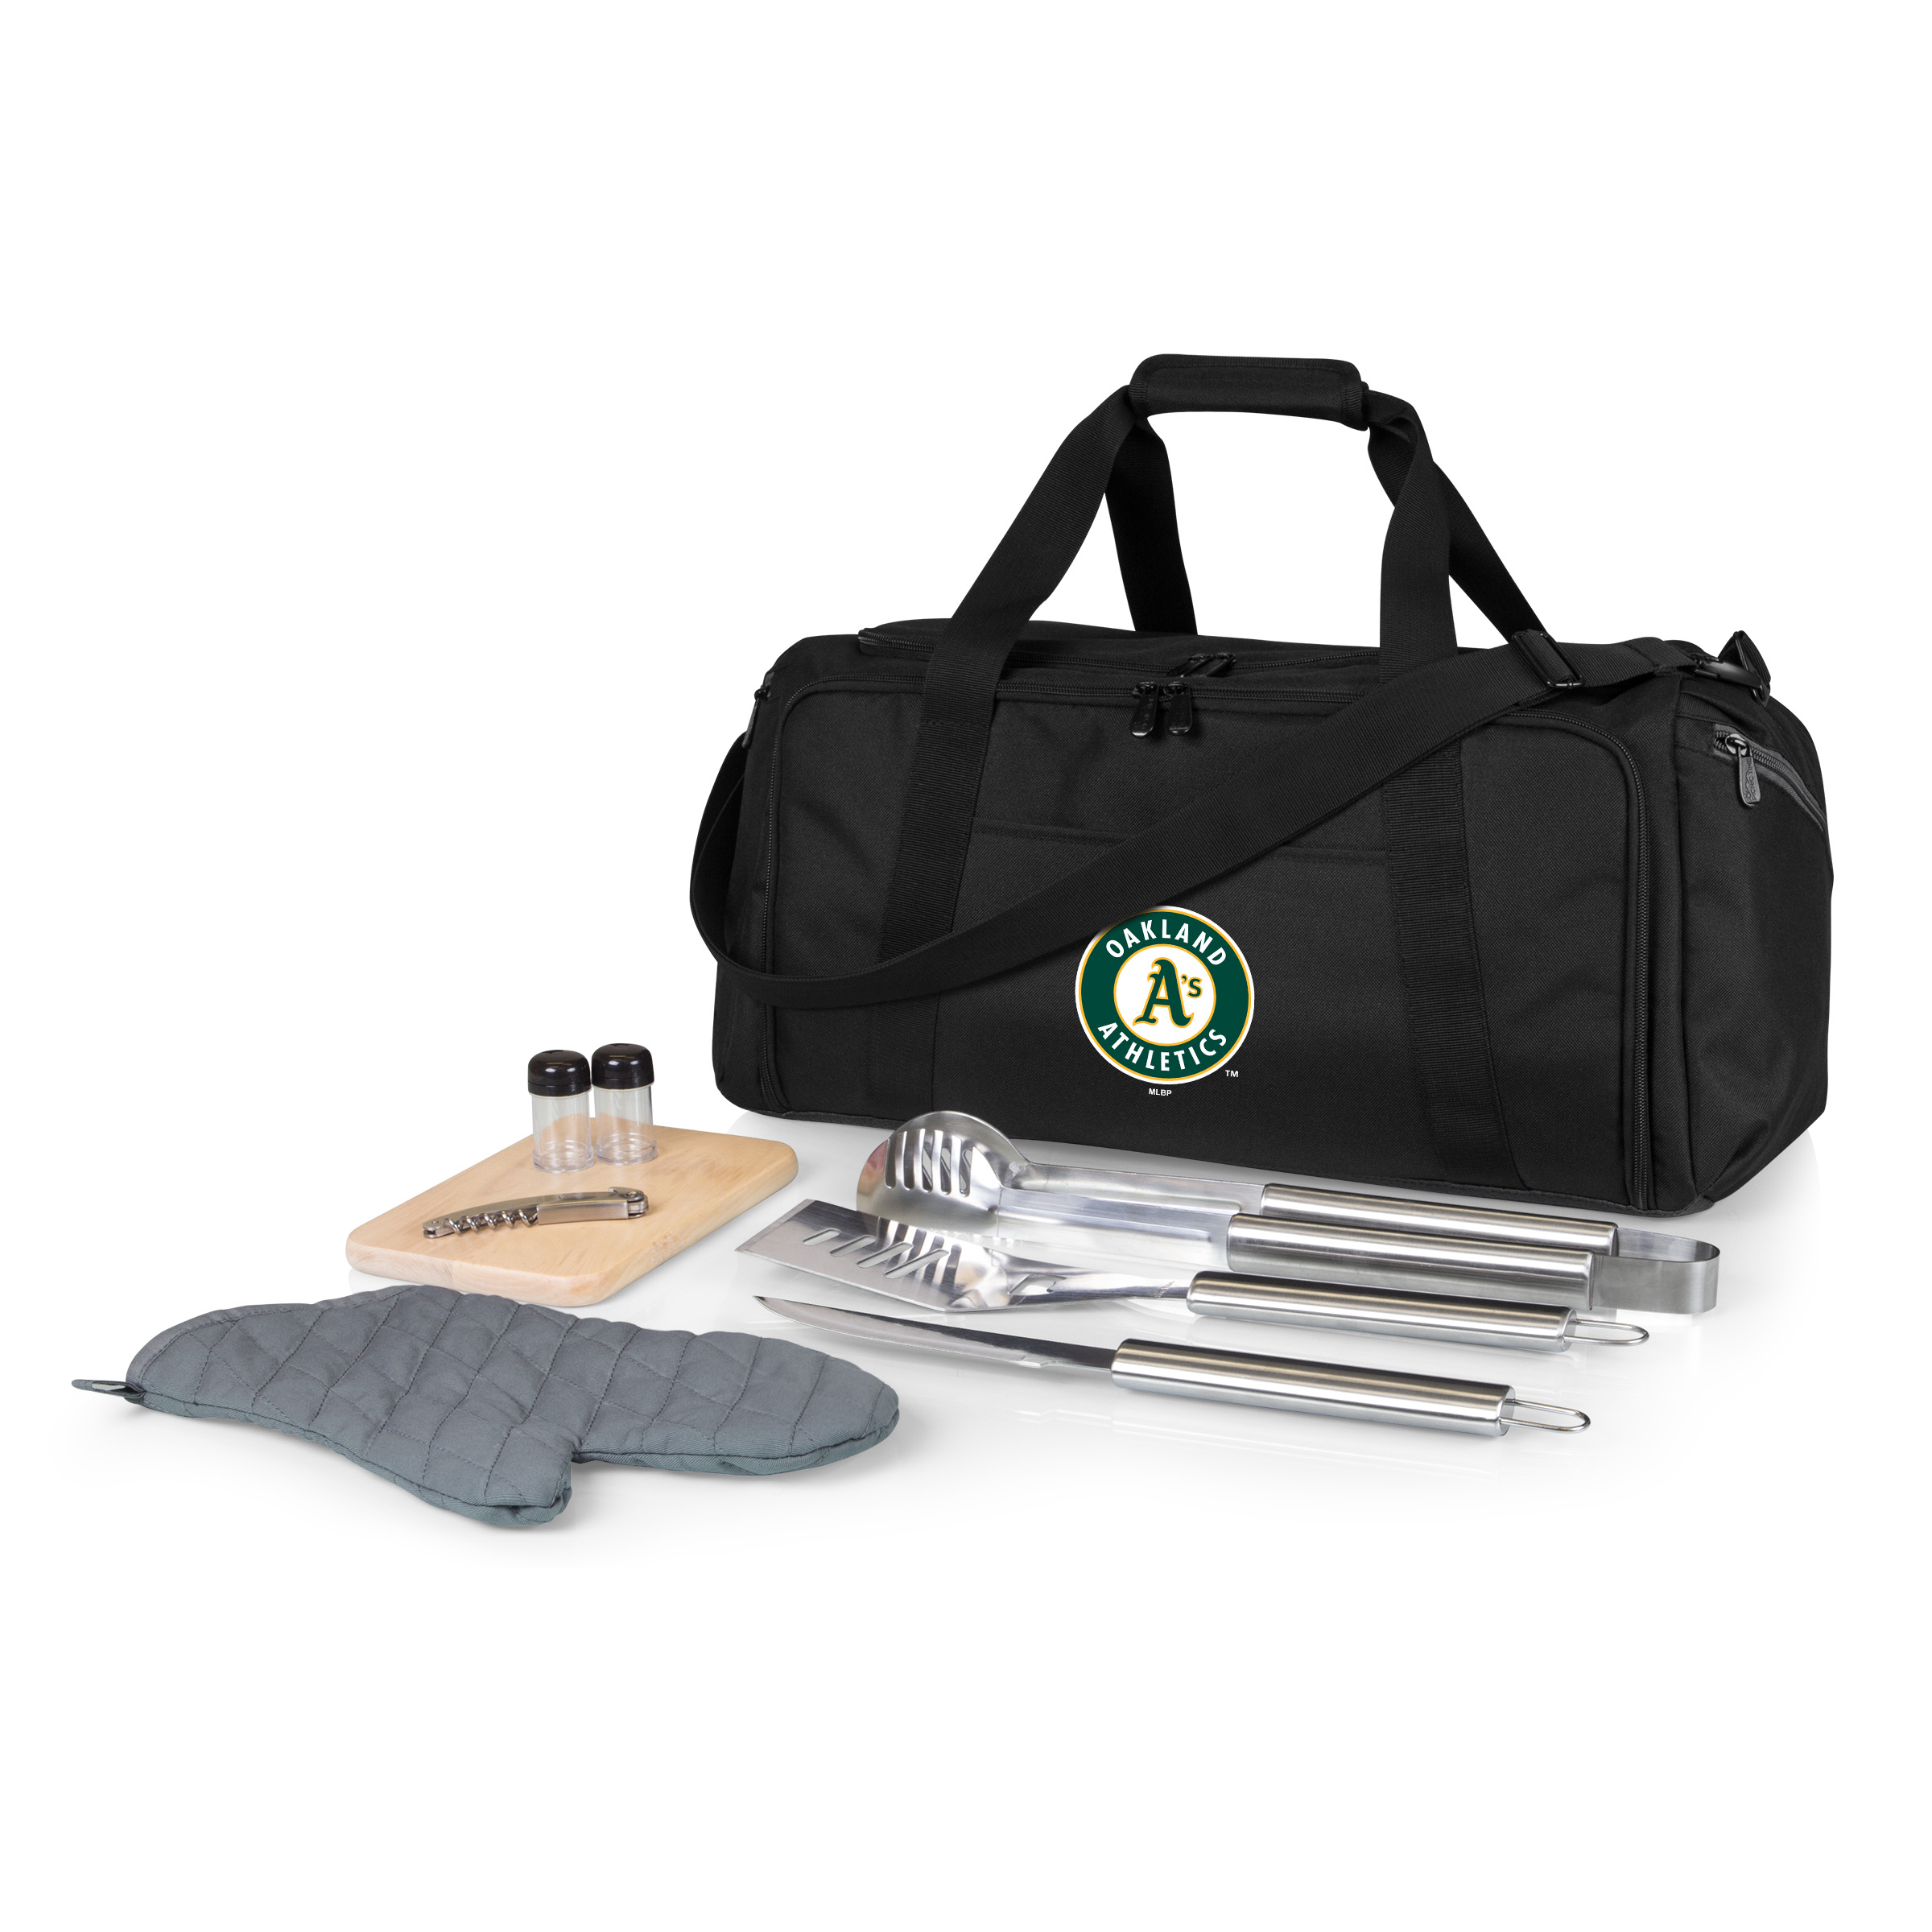 Oakland Athletics BBQ Kit Cooler - Black - No Size